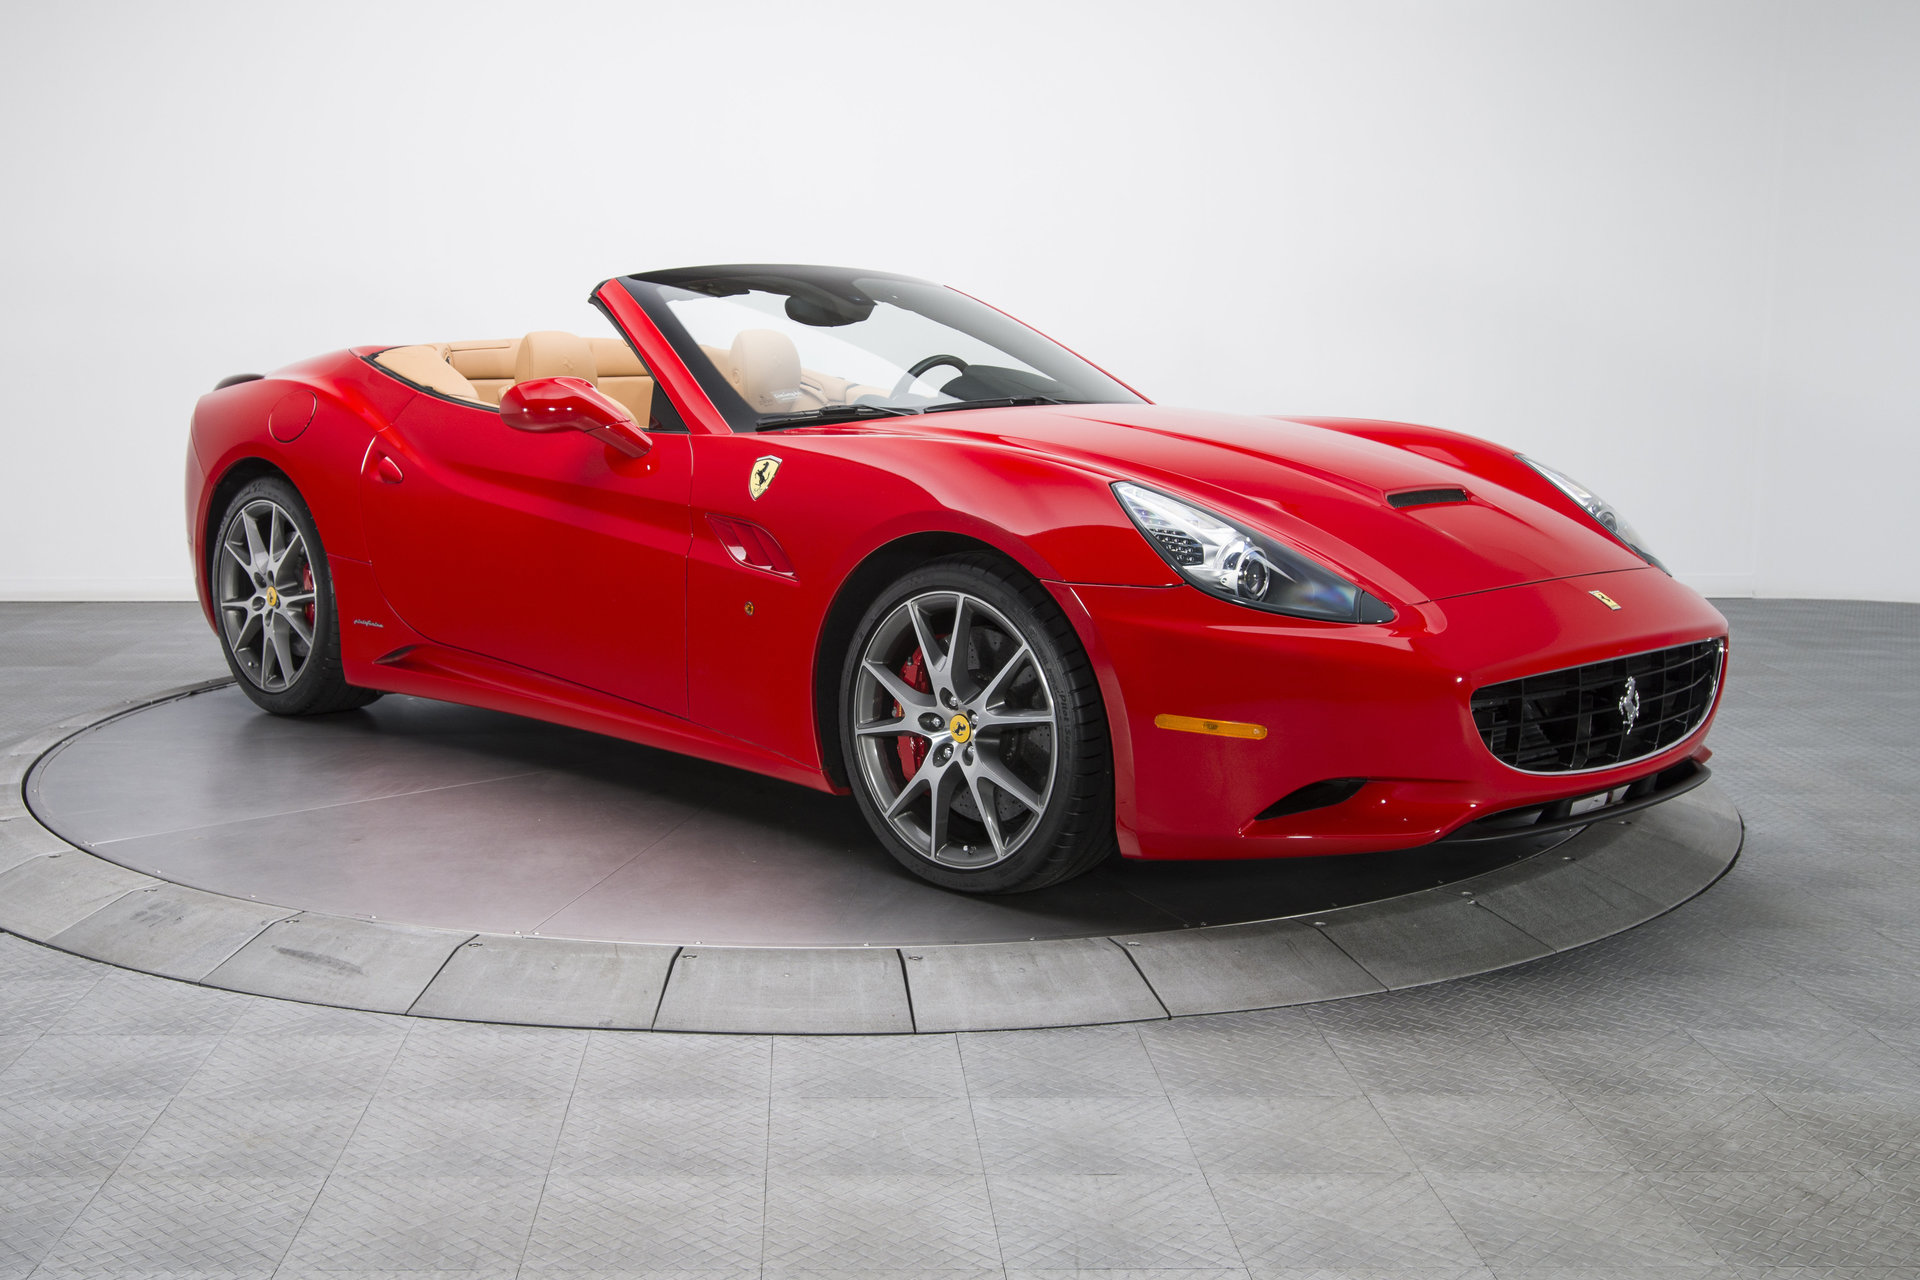 2010 Ferrari California For Sale #91616